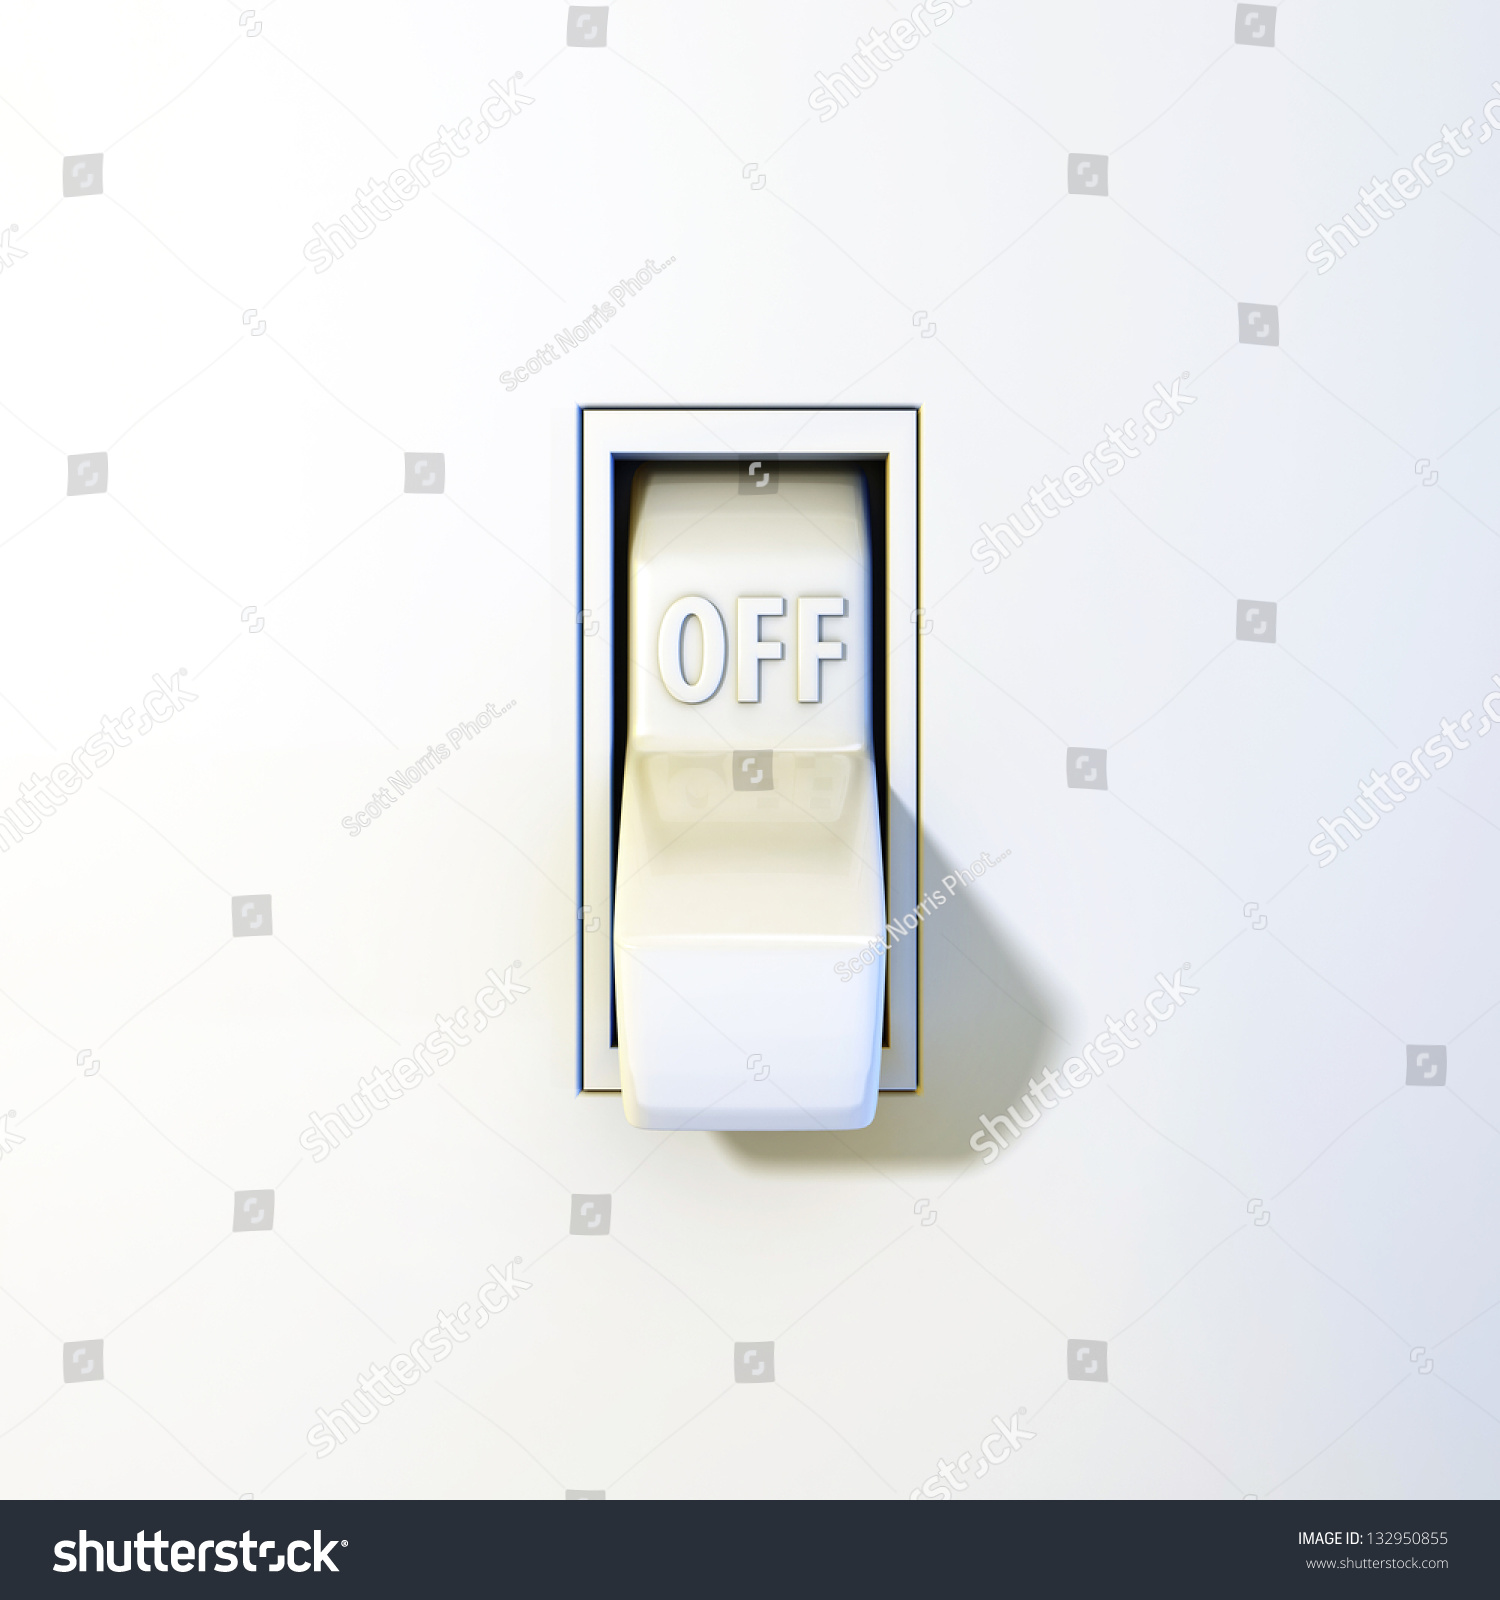 Close Wall Light Switch Off Position Stock Illustration 132950855 ... for Light Switch Off Position  177nar